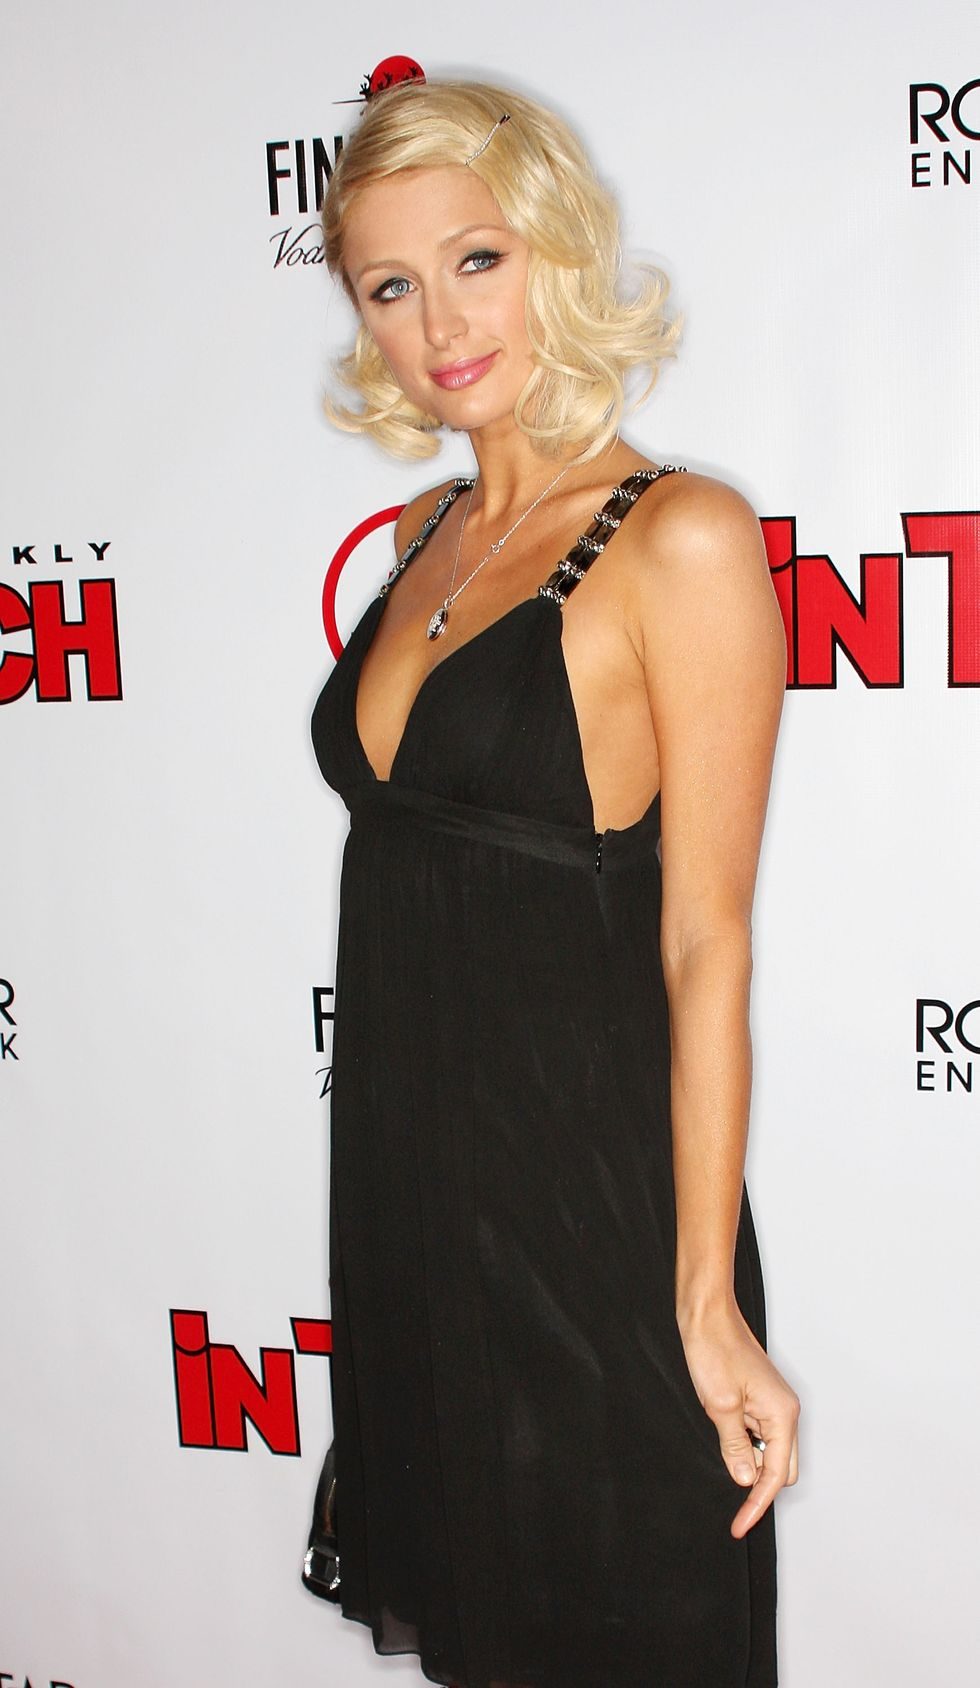 paris-hilton-in-touch-weeklys-summer-stars-party-in-los-angeles-04